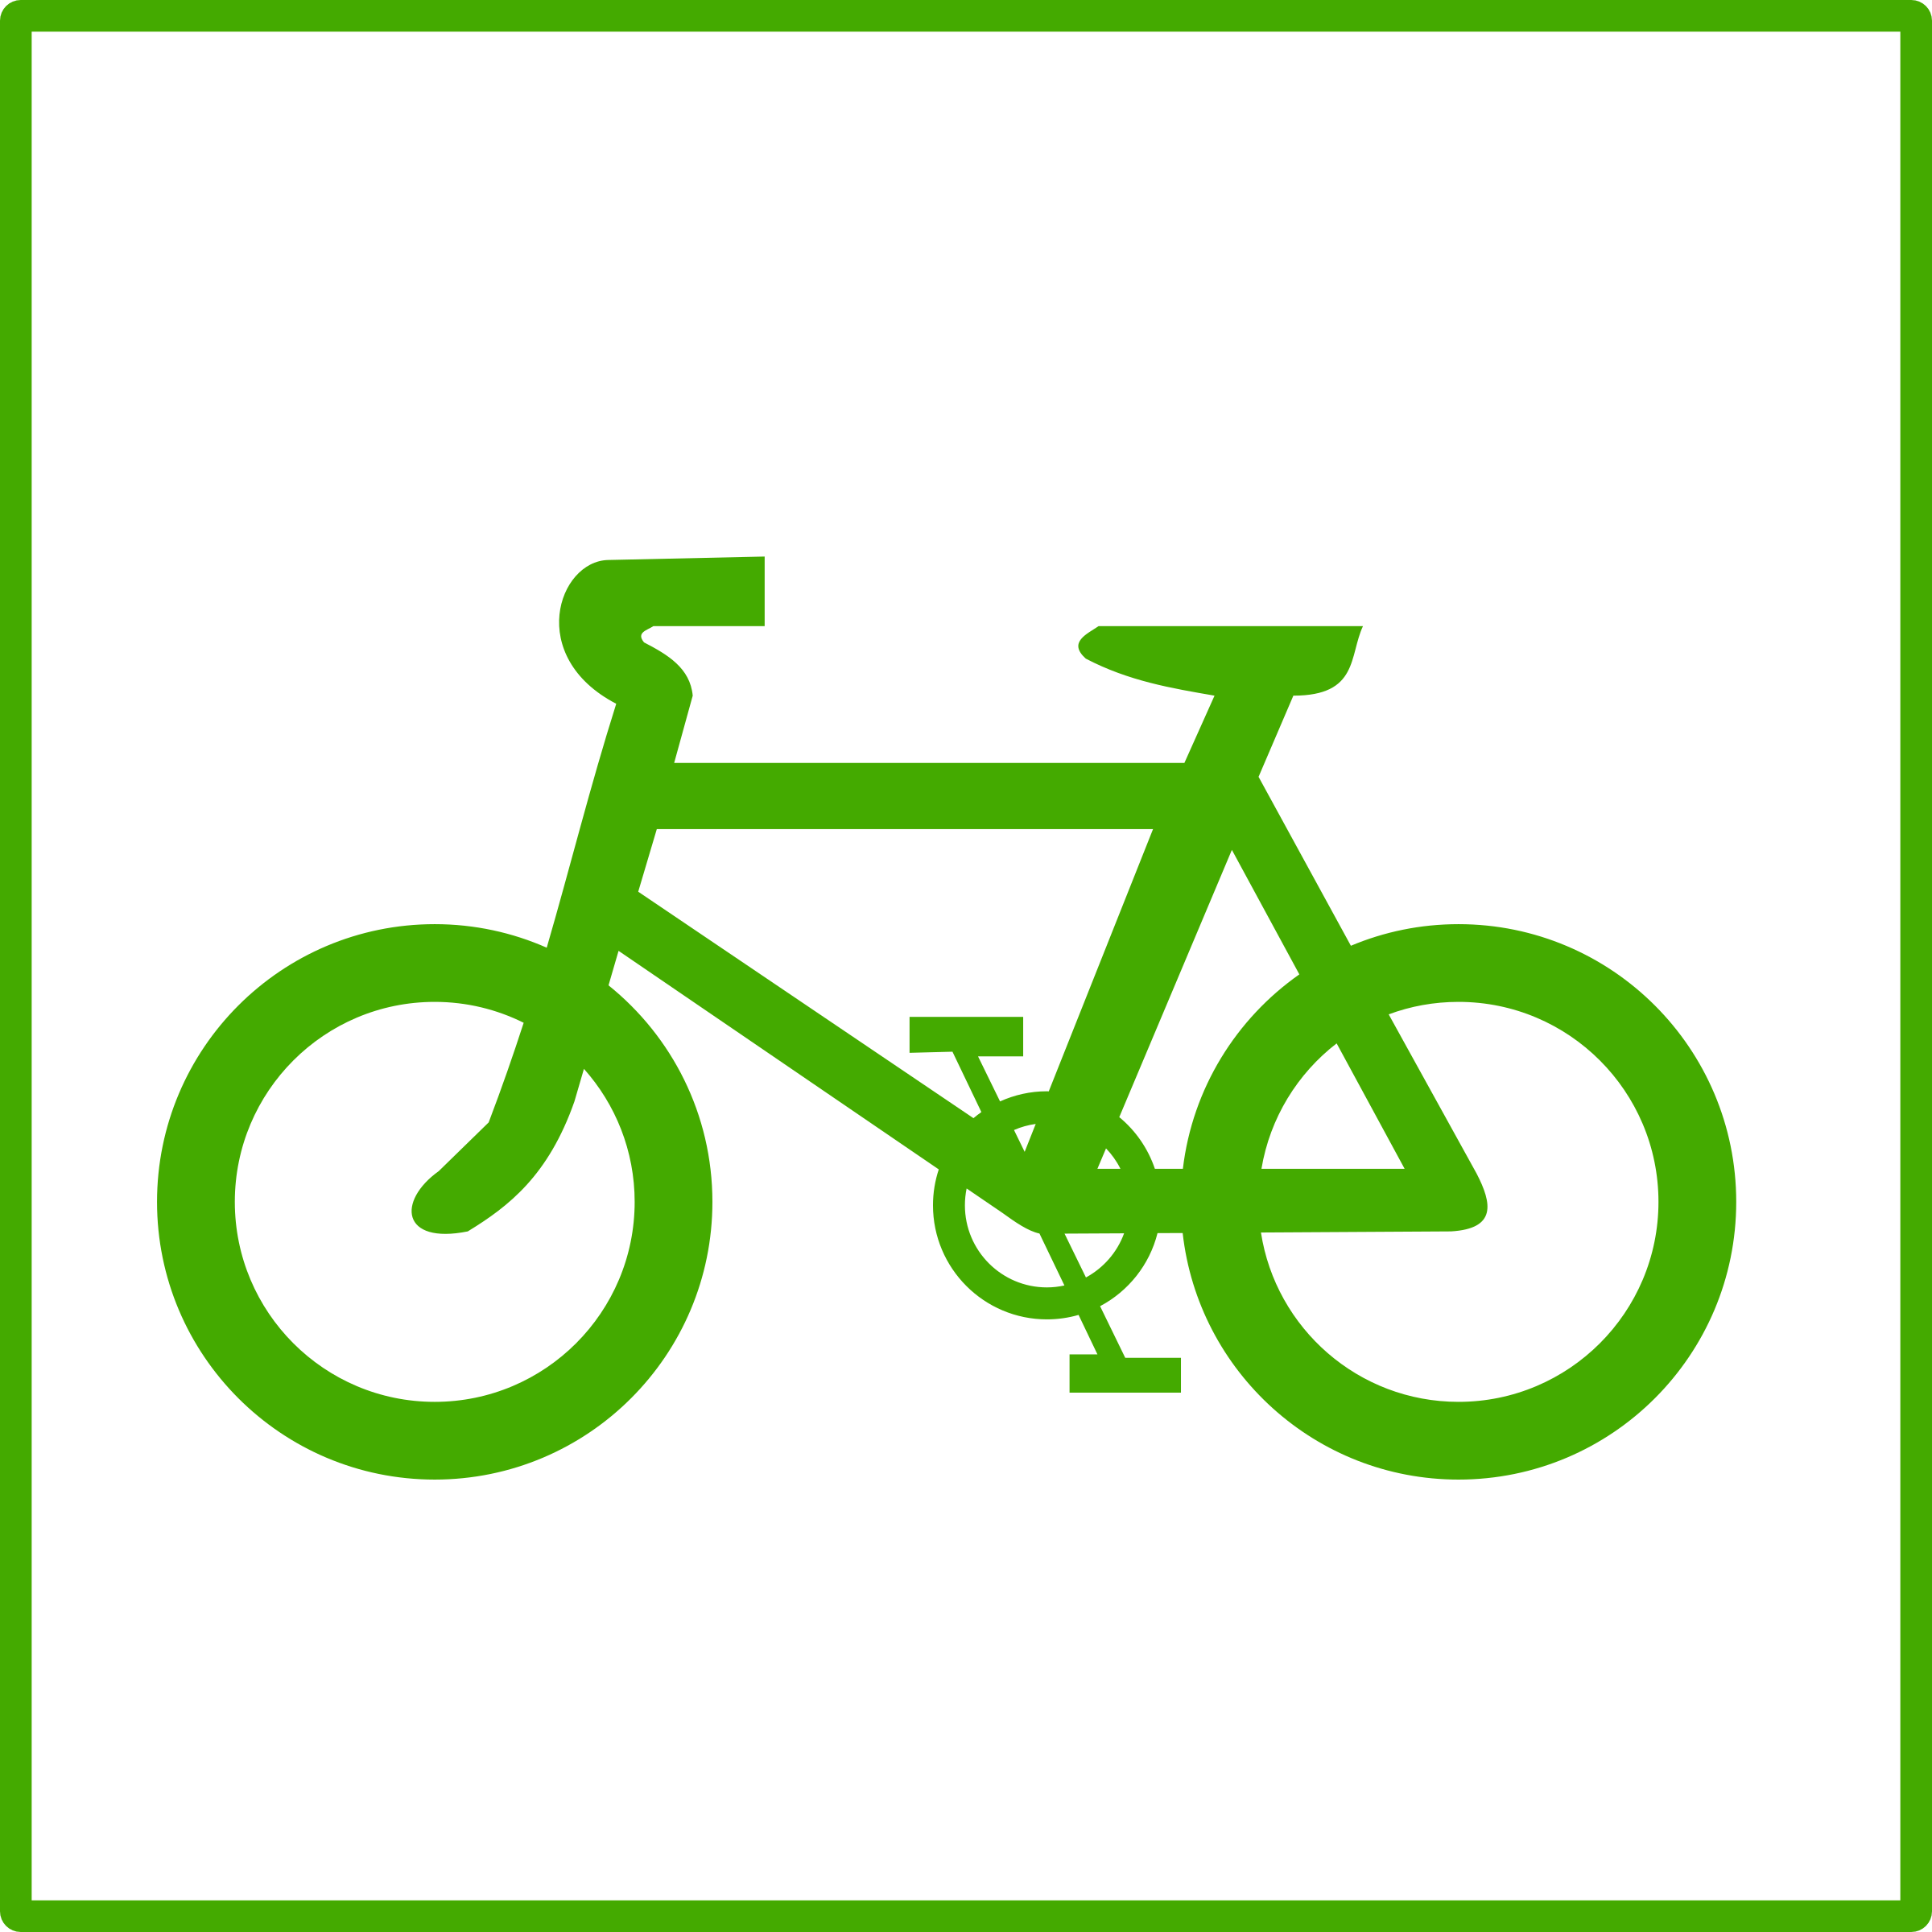 Motorcycle clipart red dirt. Eco green bicycle icon